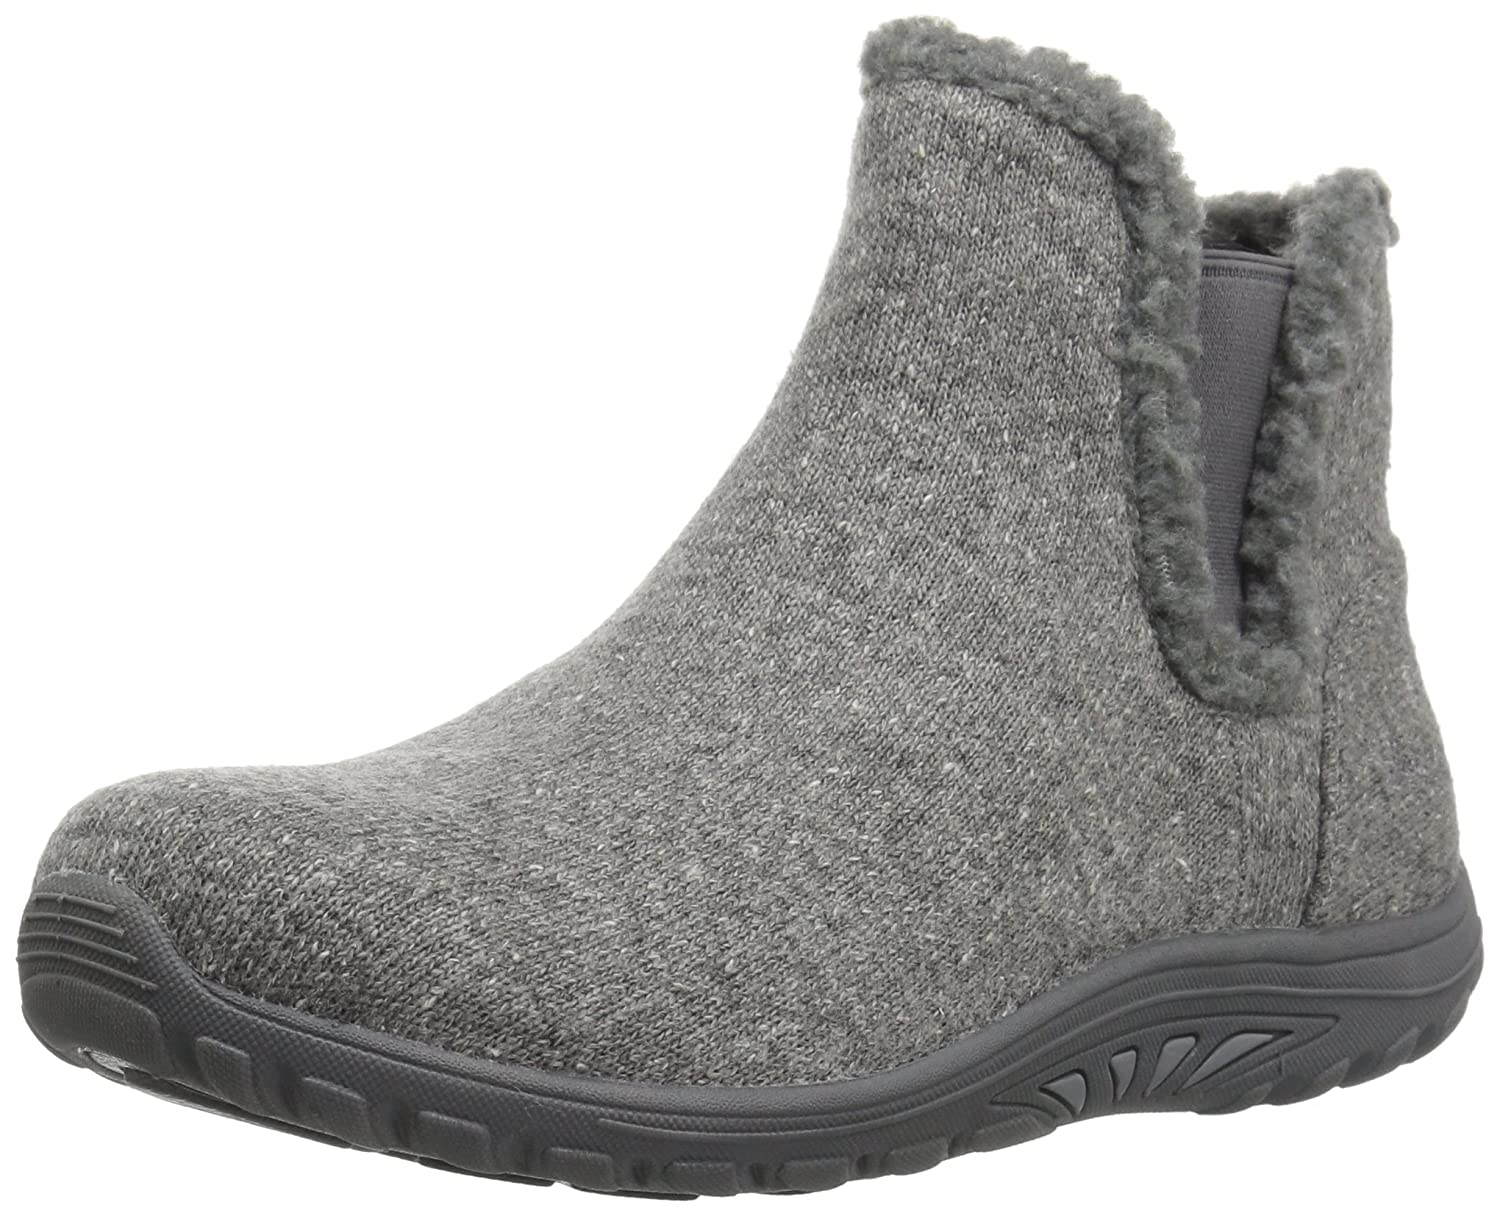 Skechers Damens's Damens's Skechers Reggae Fest-Speckled Chelsea Boot,Gray,6 M US - b9dec2